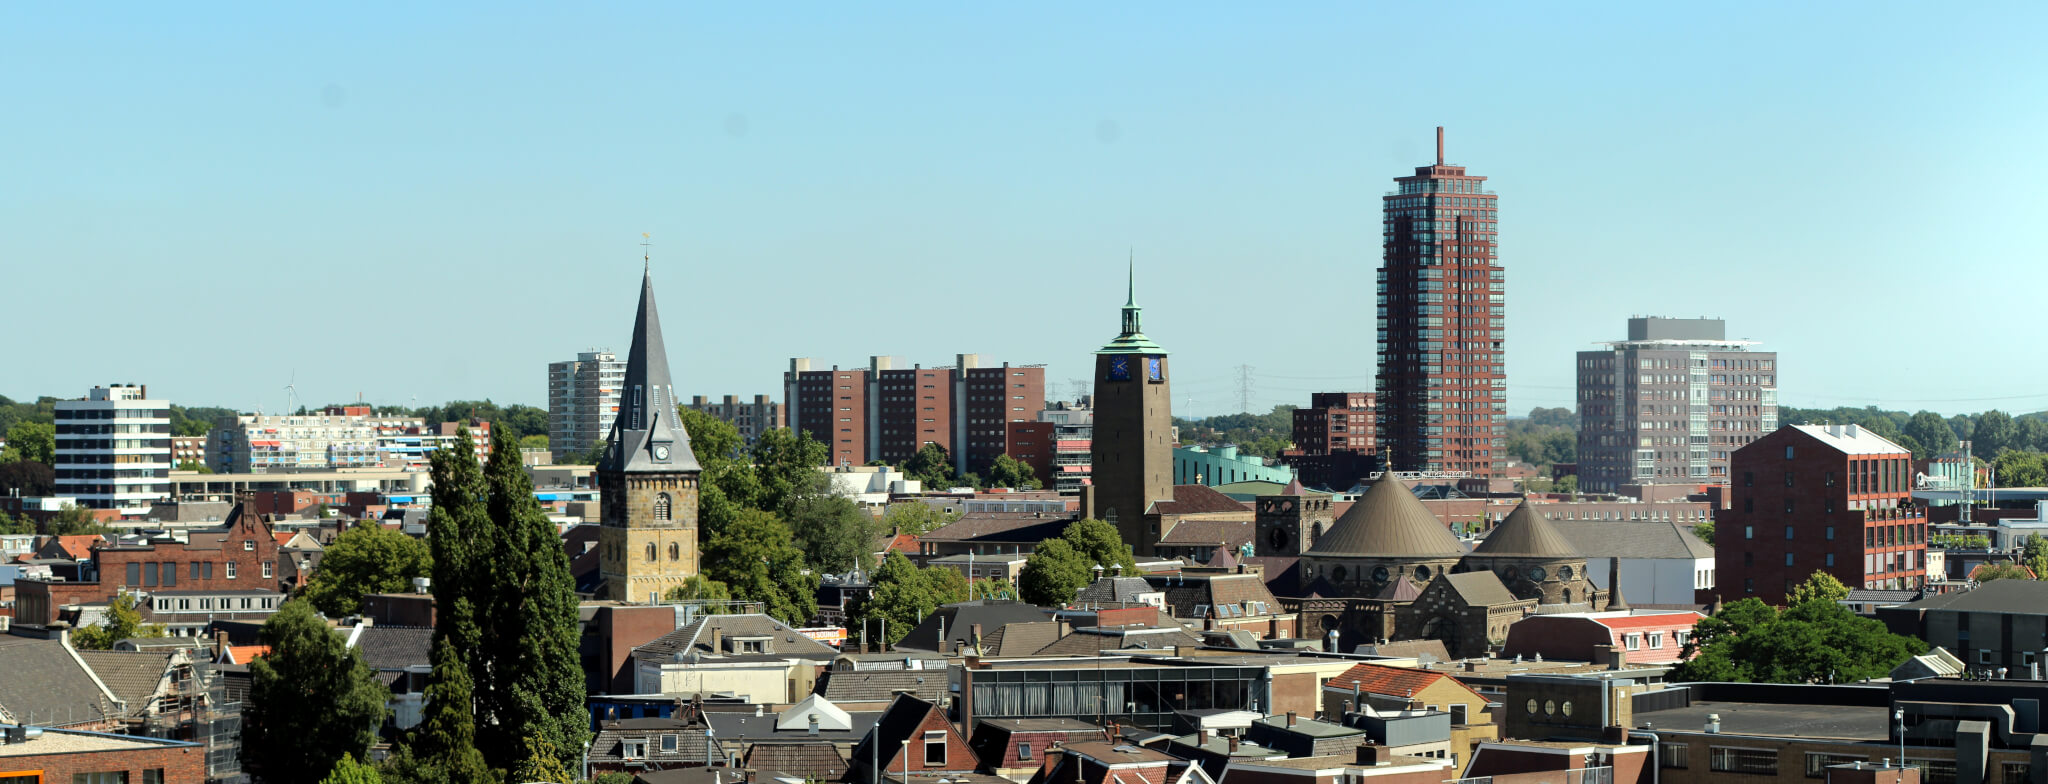 Enschede isvw for Cedeo wikipedia